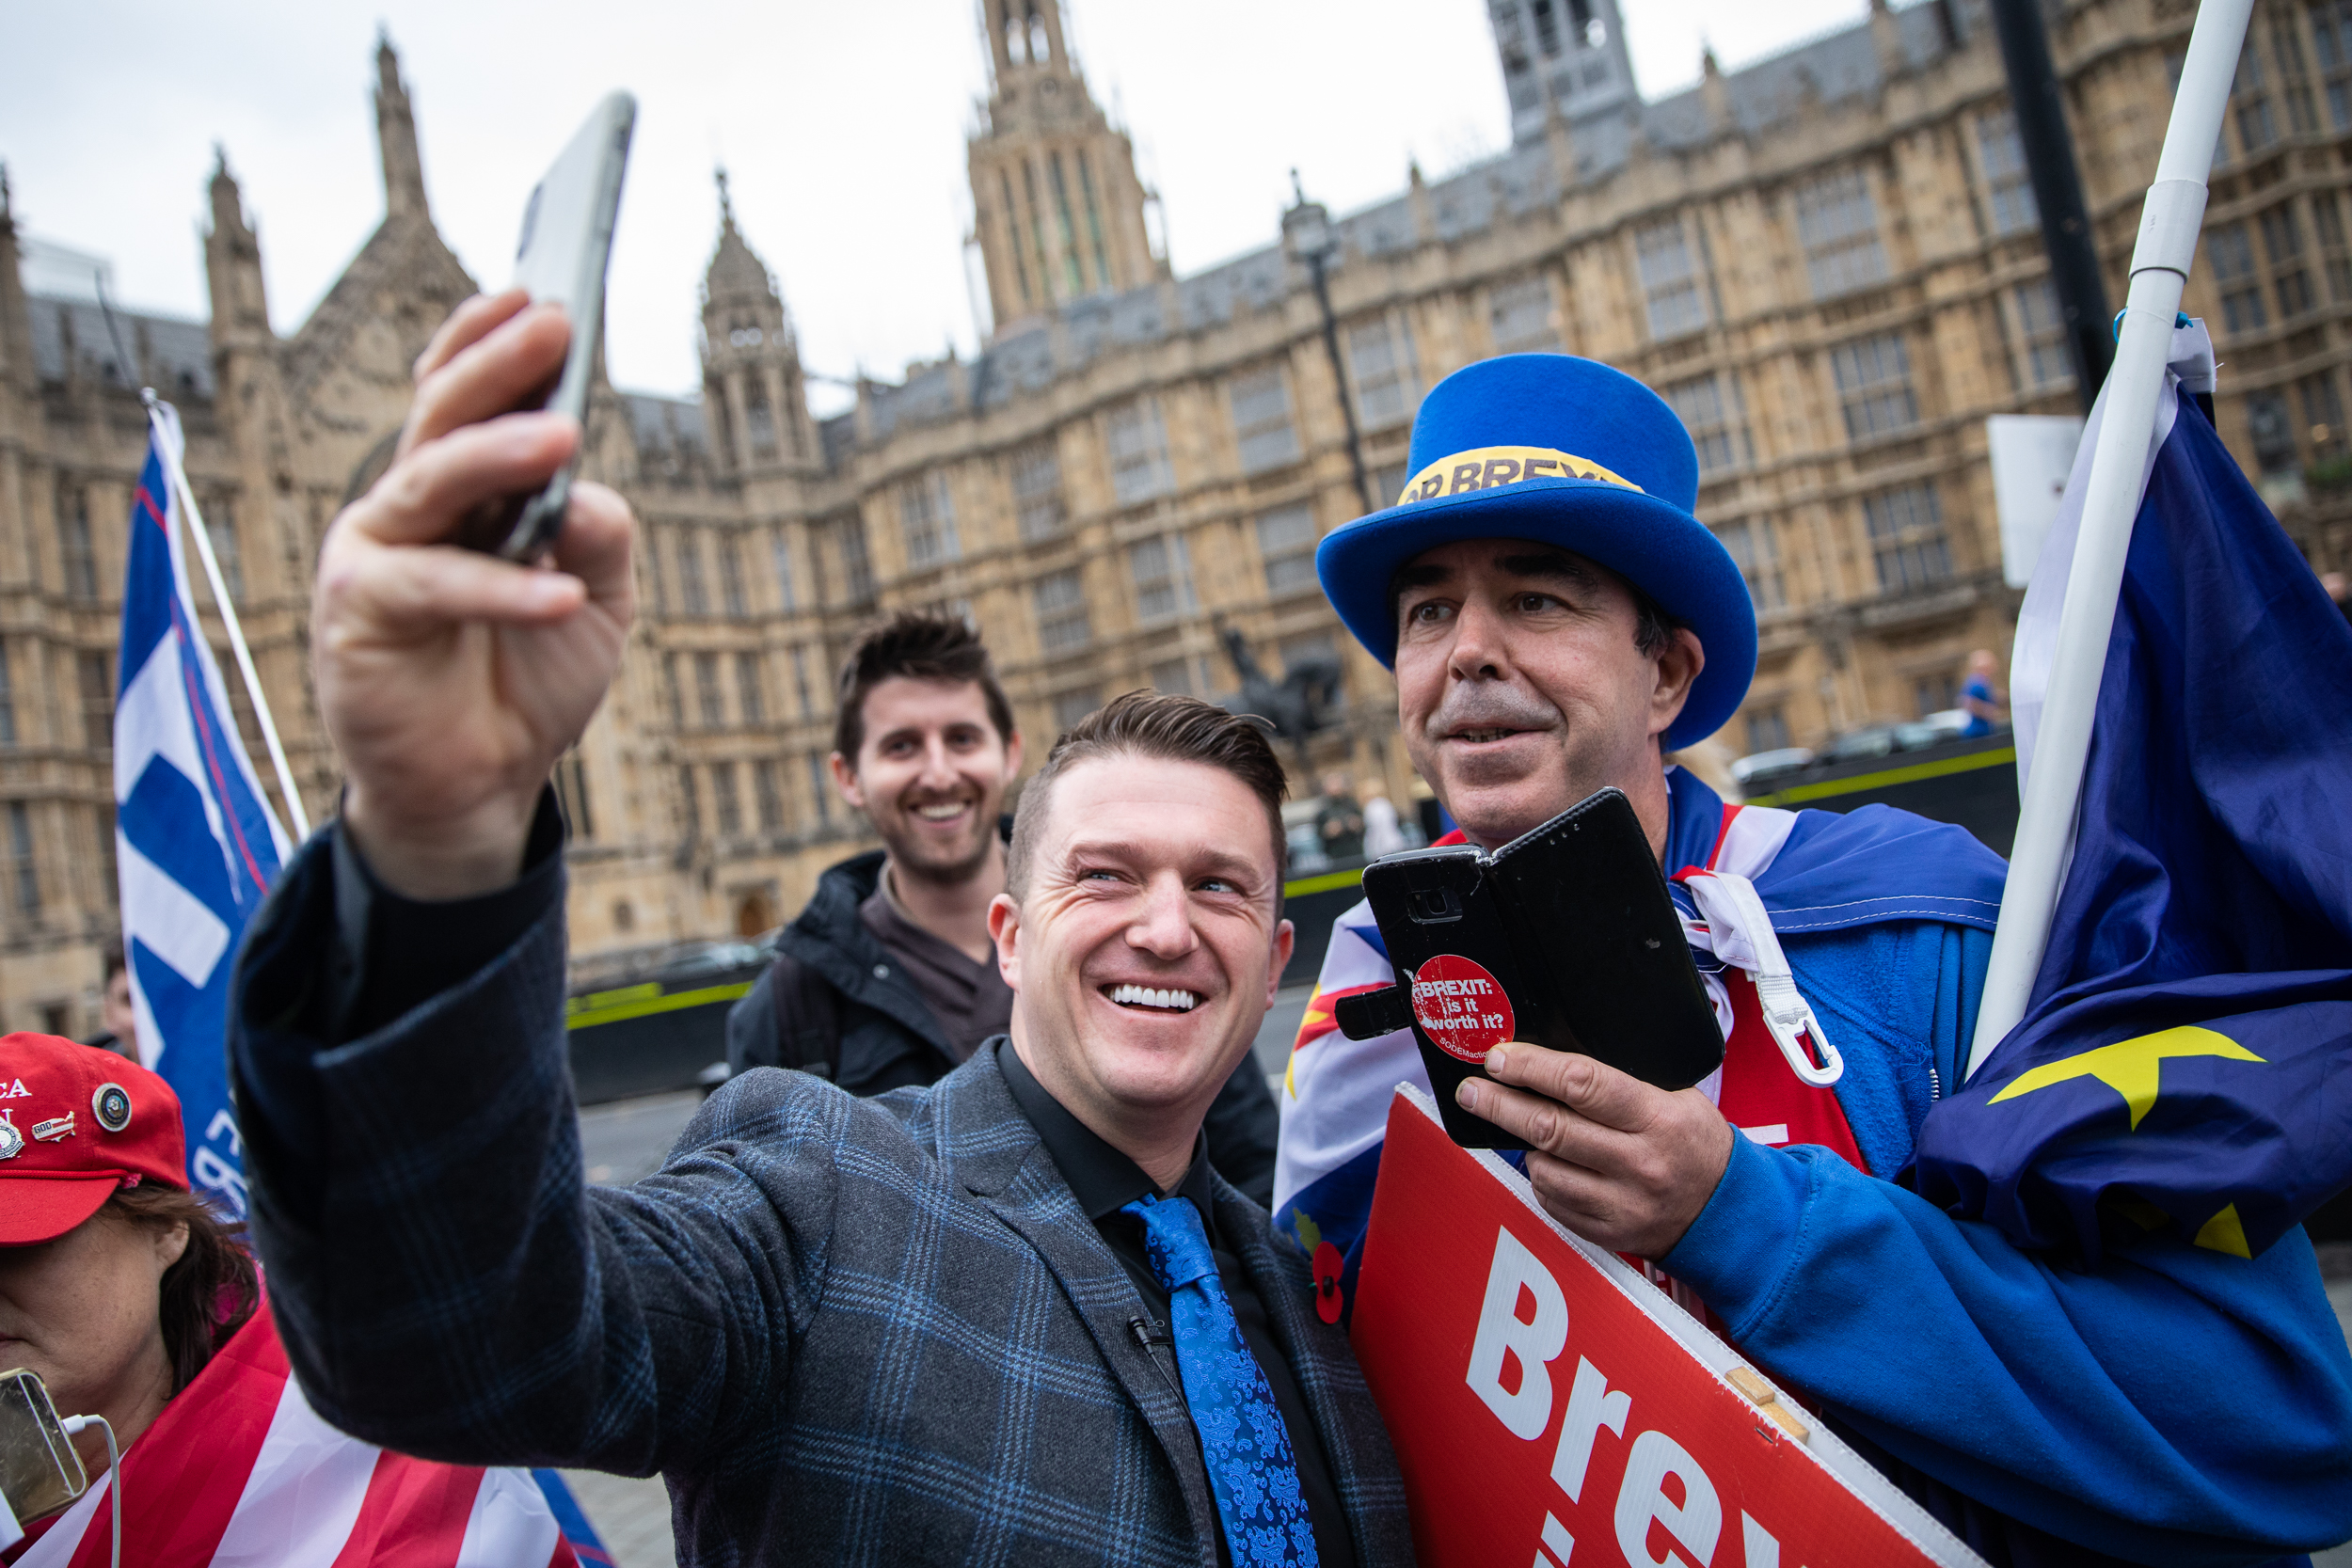 Stephen Yaxley-Lennon, also known as Tommy Robinson, (left) takes a selfie with prominent anti-Brexit campaigner Steve Bray (right) in Westminster. November 2018 - London, UK.